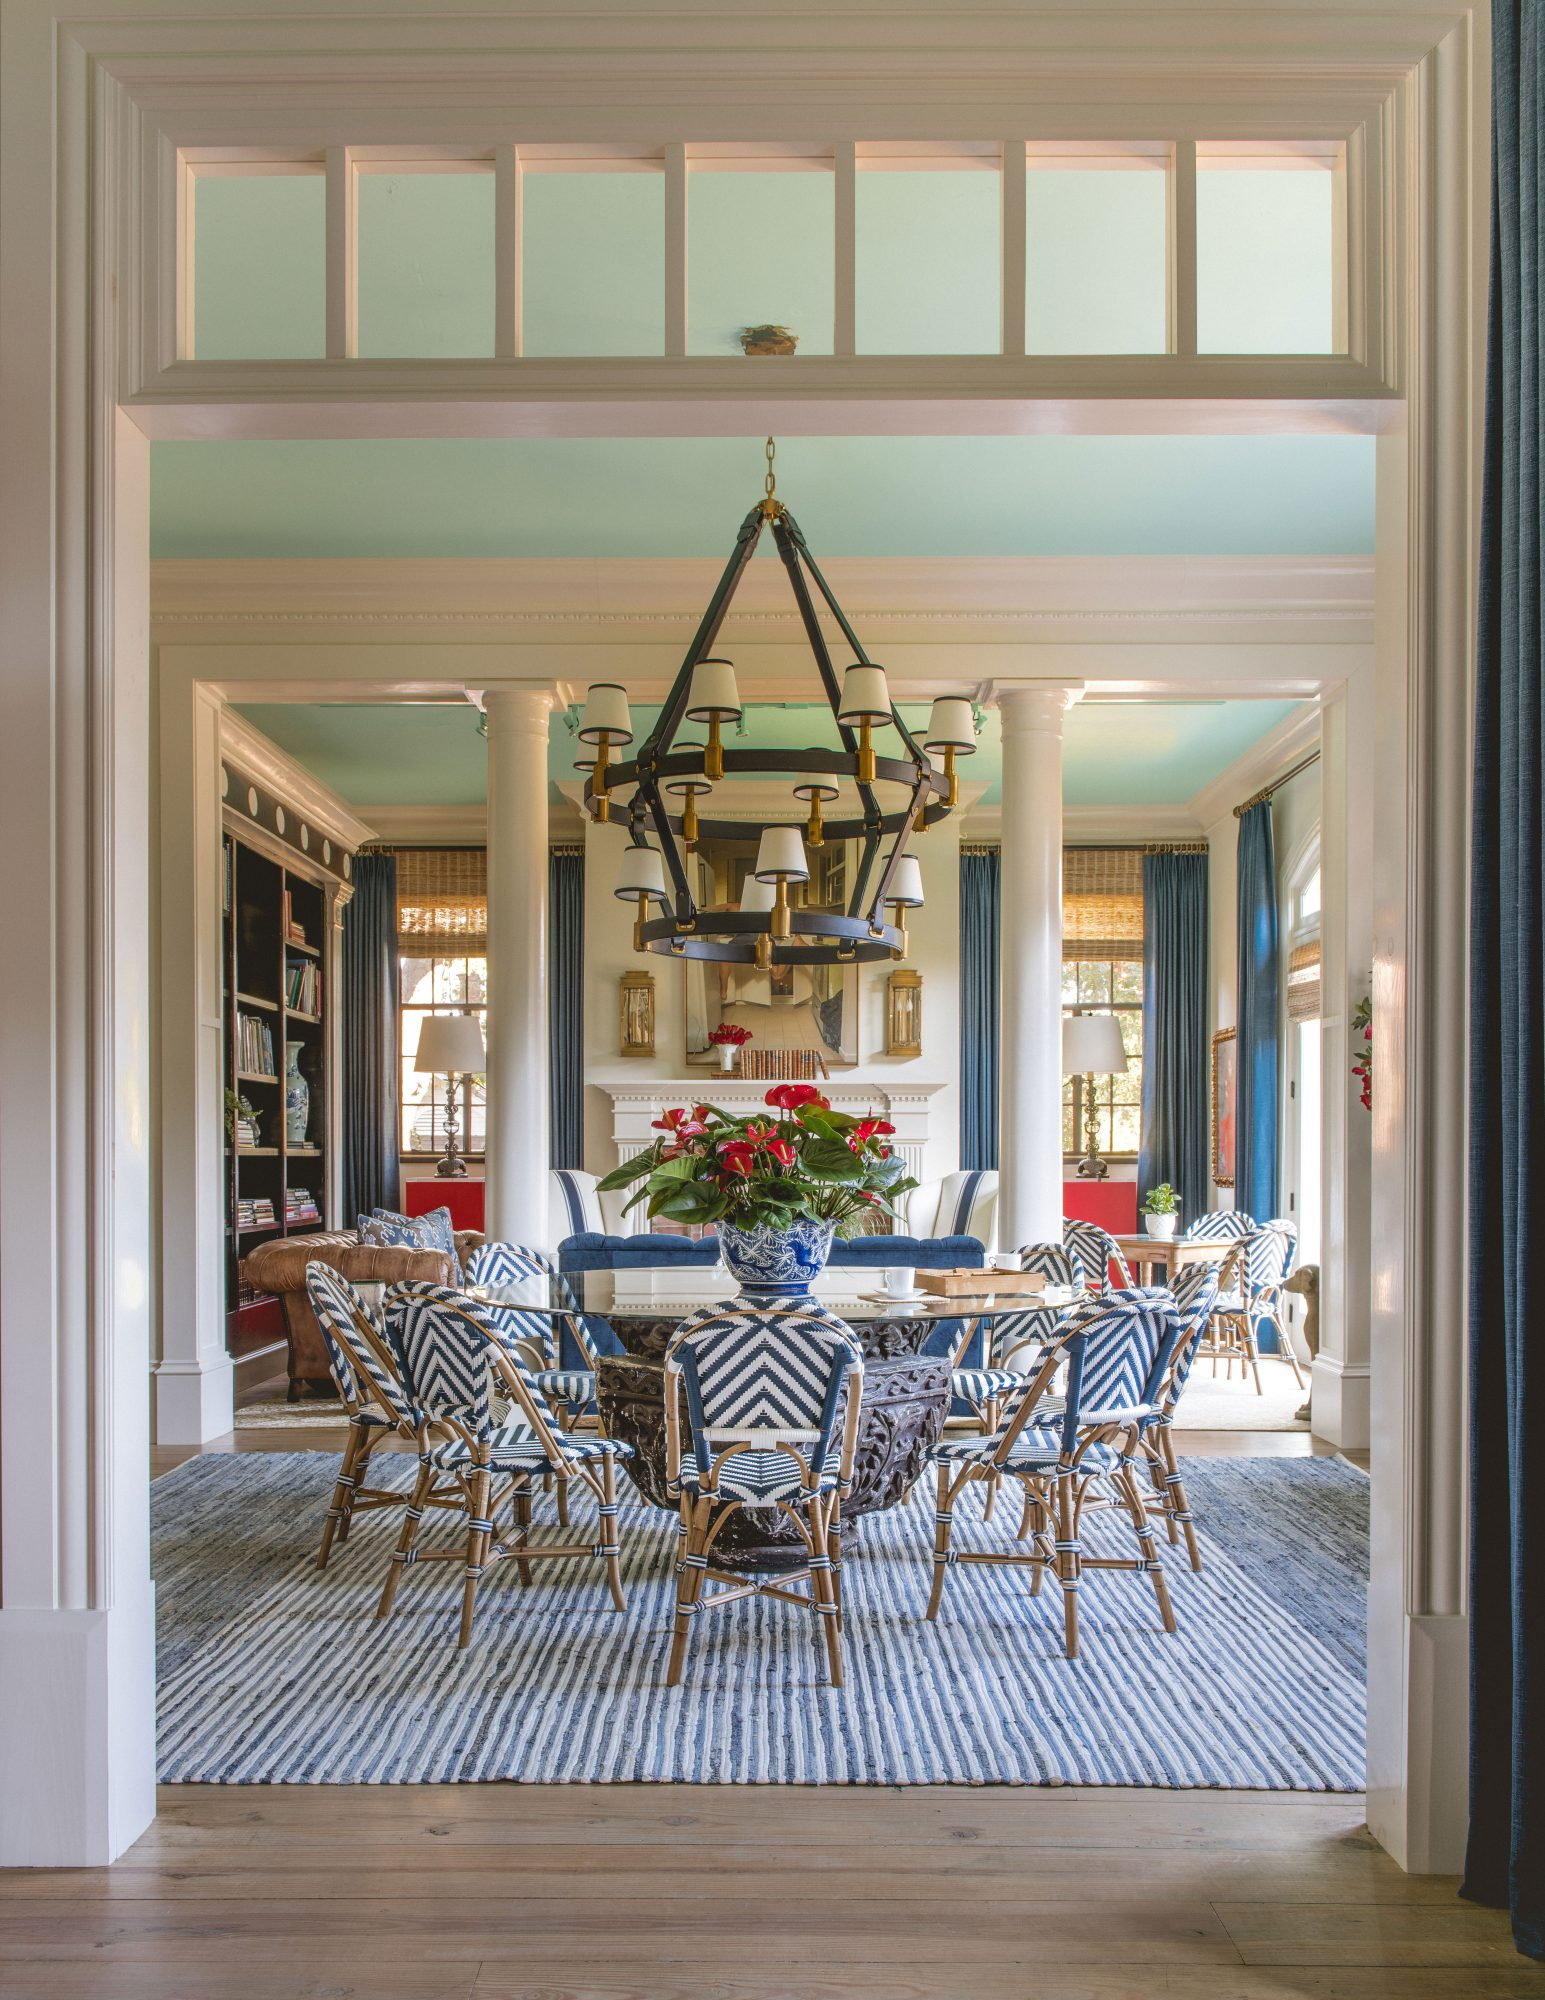 Dining room with Pillars and Red, White, and Blue Decor